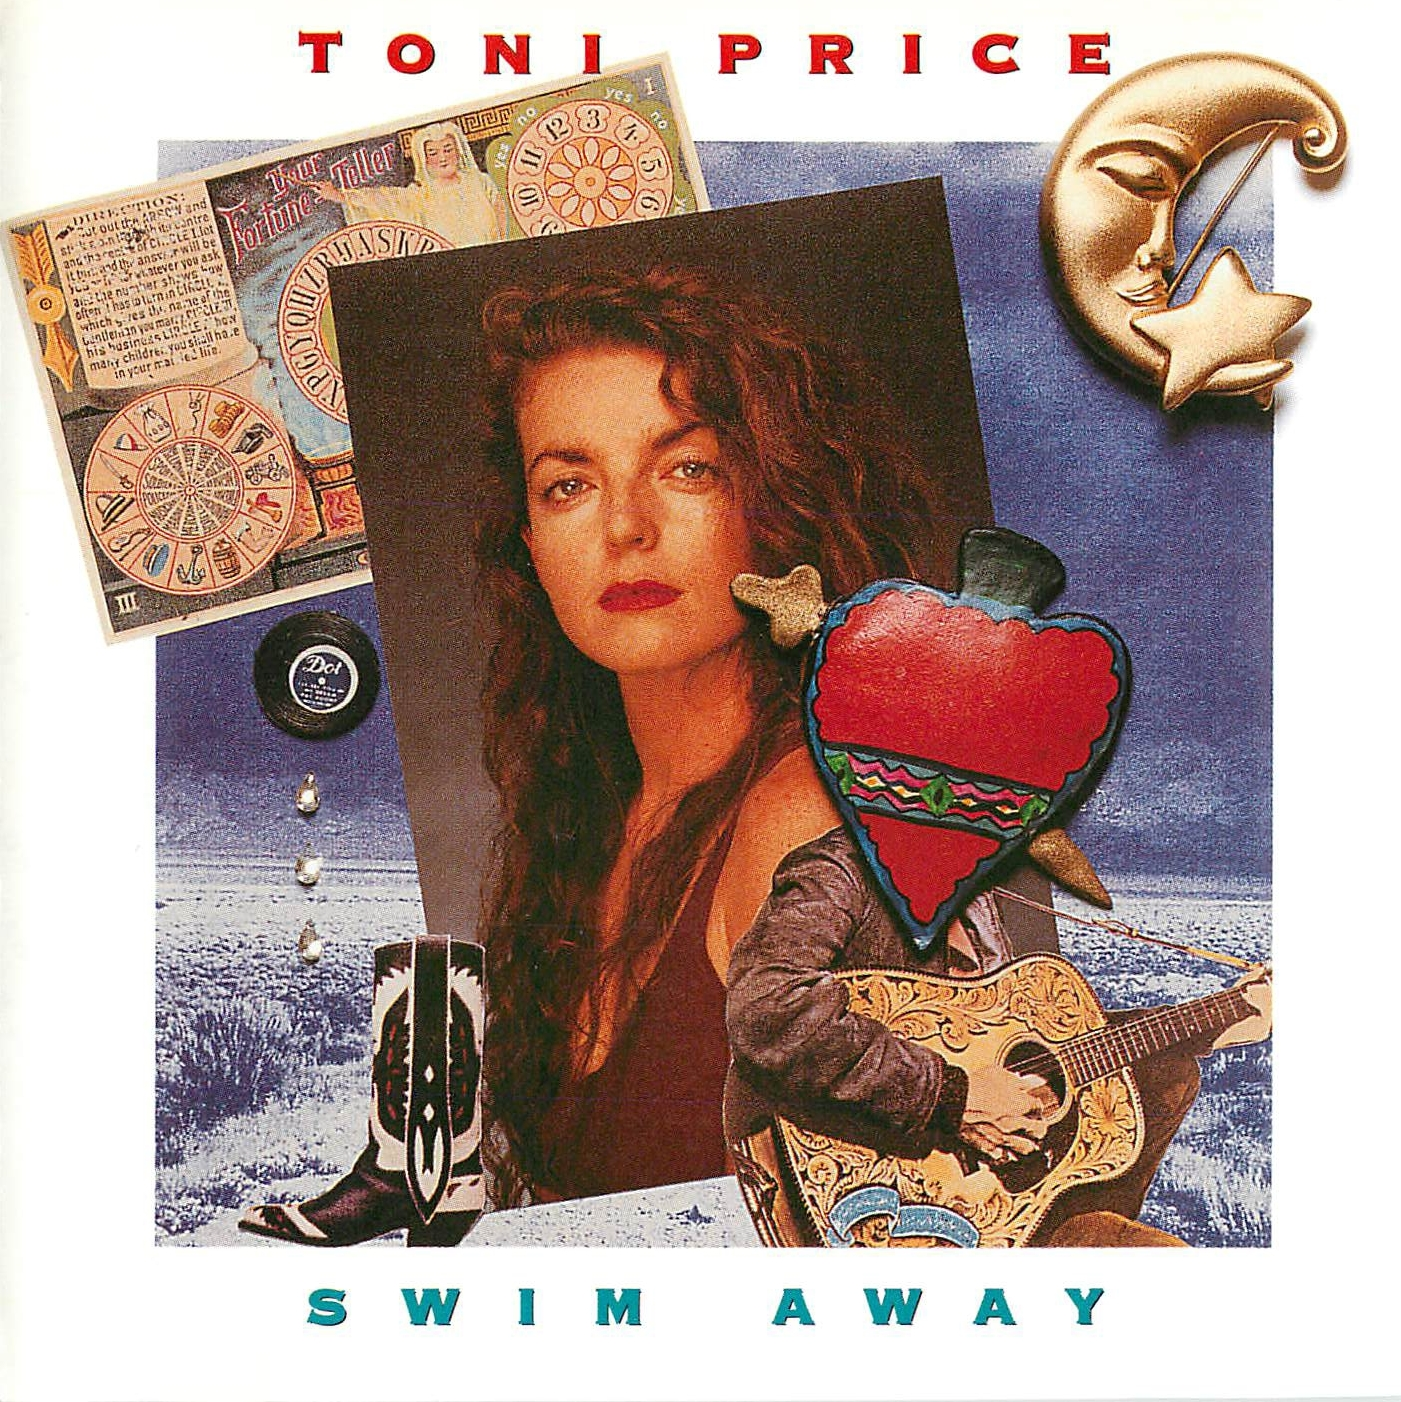 Toni Price Swim Front Cover